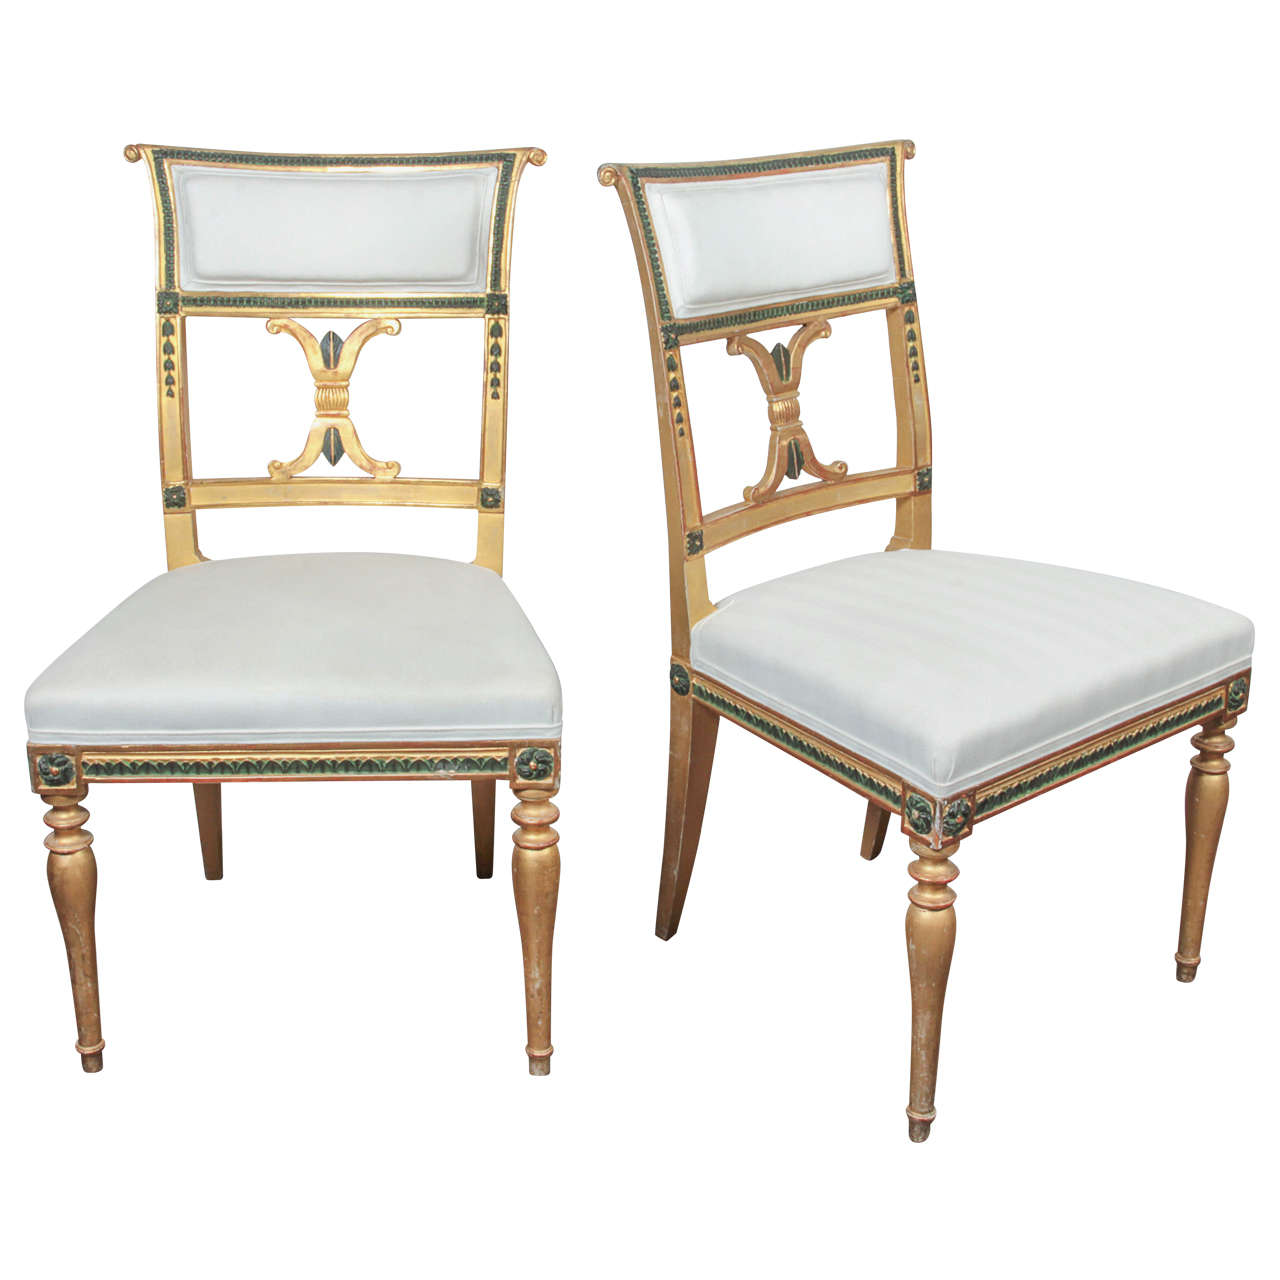 Pair Of Swedish Gustavian Chairs By Melchior Lundberg 1